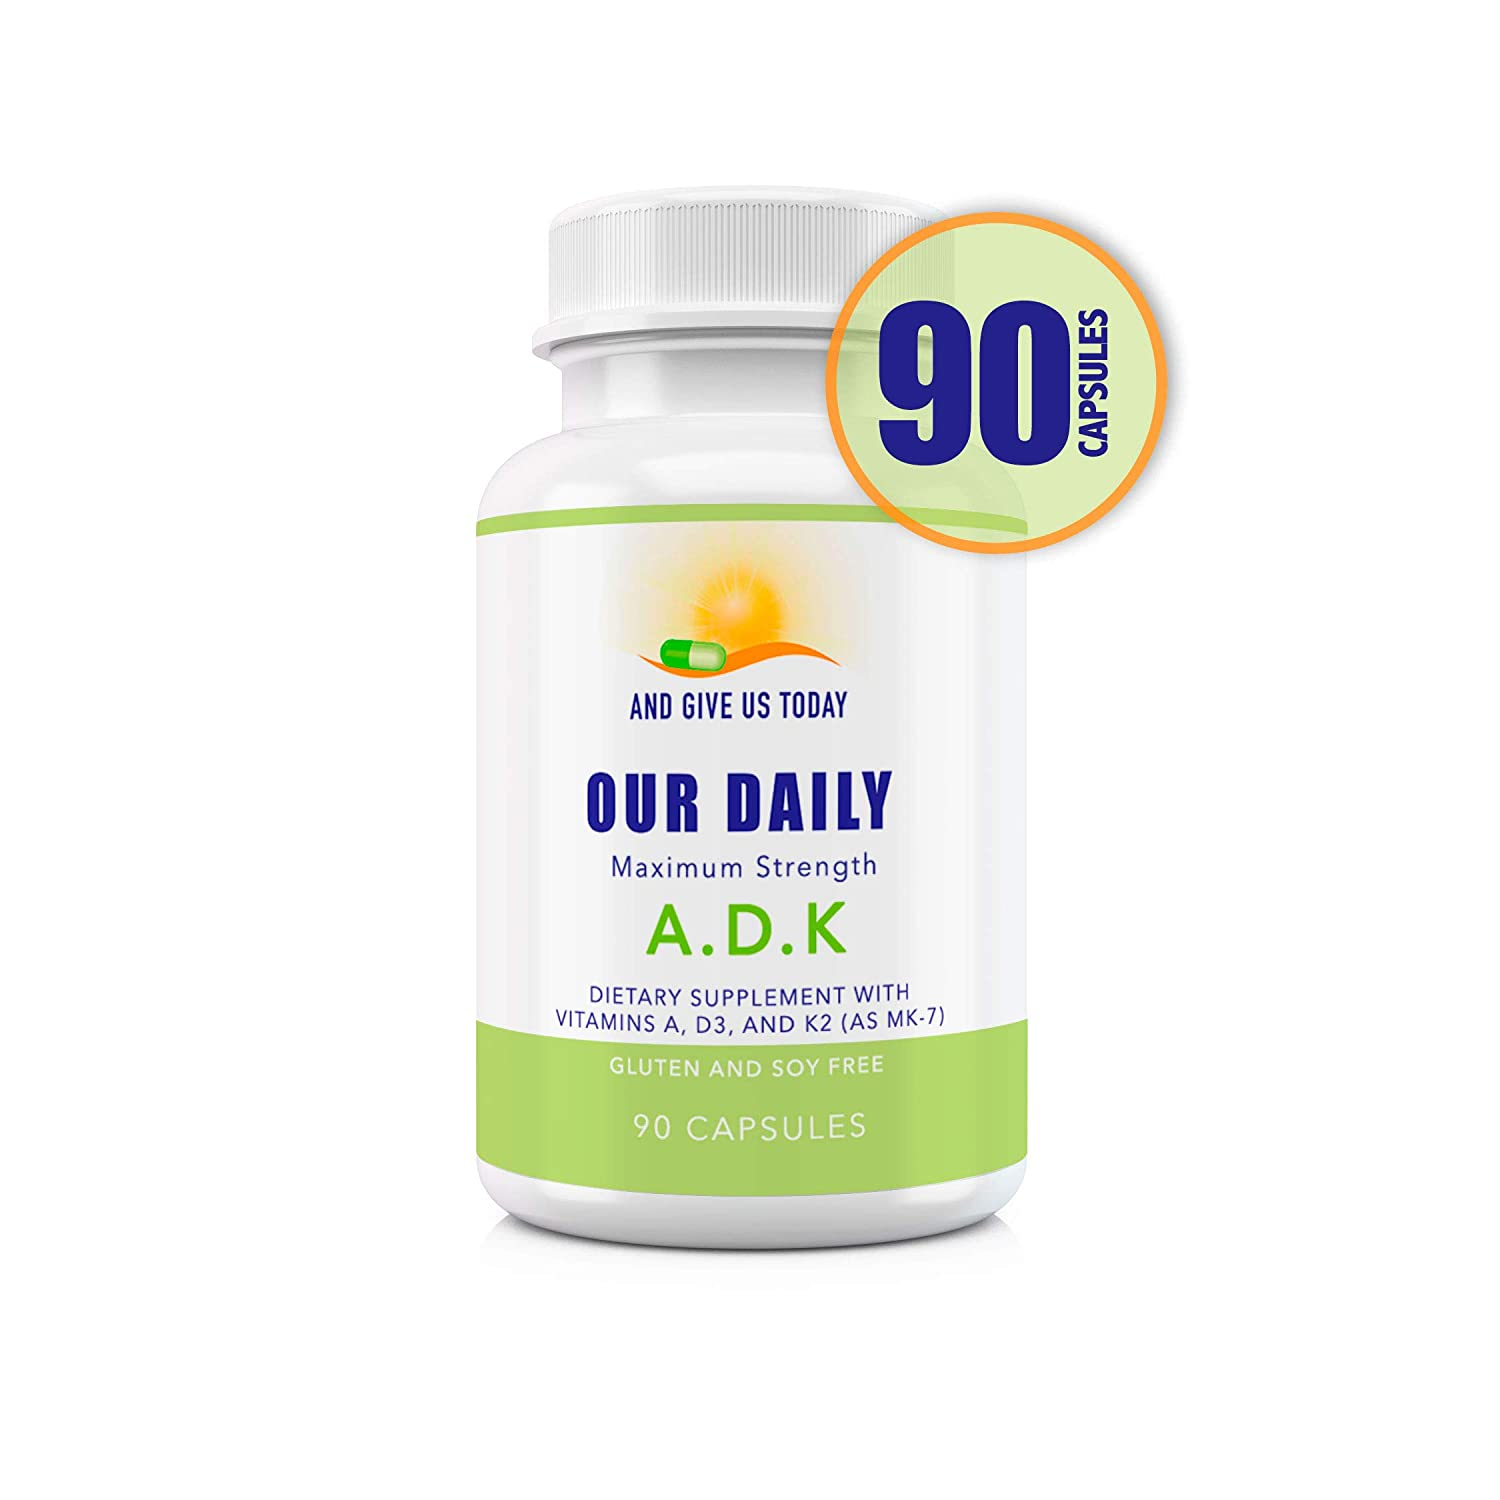 Our Daily Vites ADK Physician Formulated Vitamins A1, D3 & K2 (as MK7) - Bone, Heart & Immune System Support - Gluten Free, Soy Free, Non-GMO, Vegetarian Capsules 90 Count (3 Month Supply)